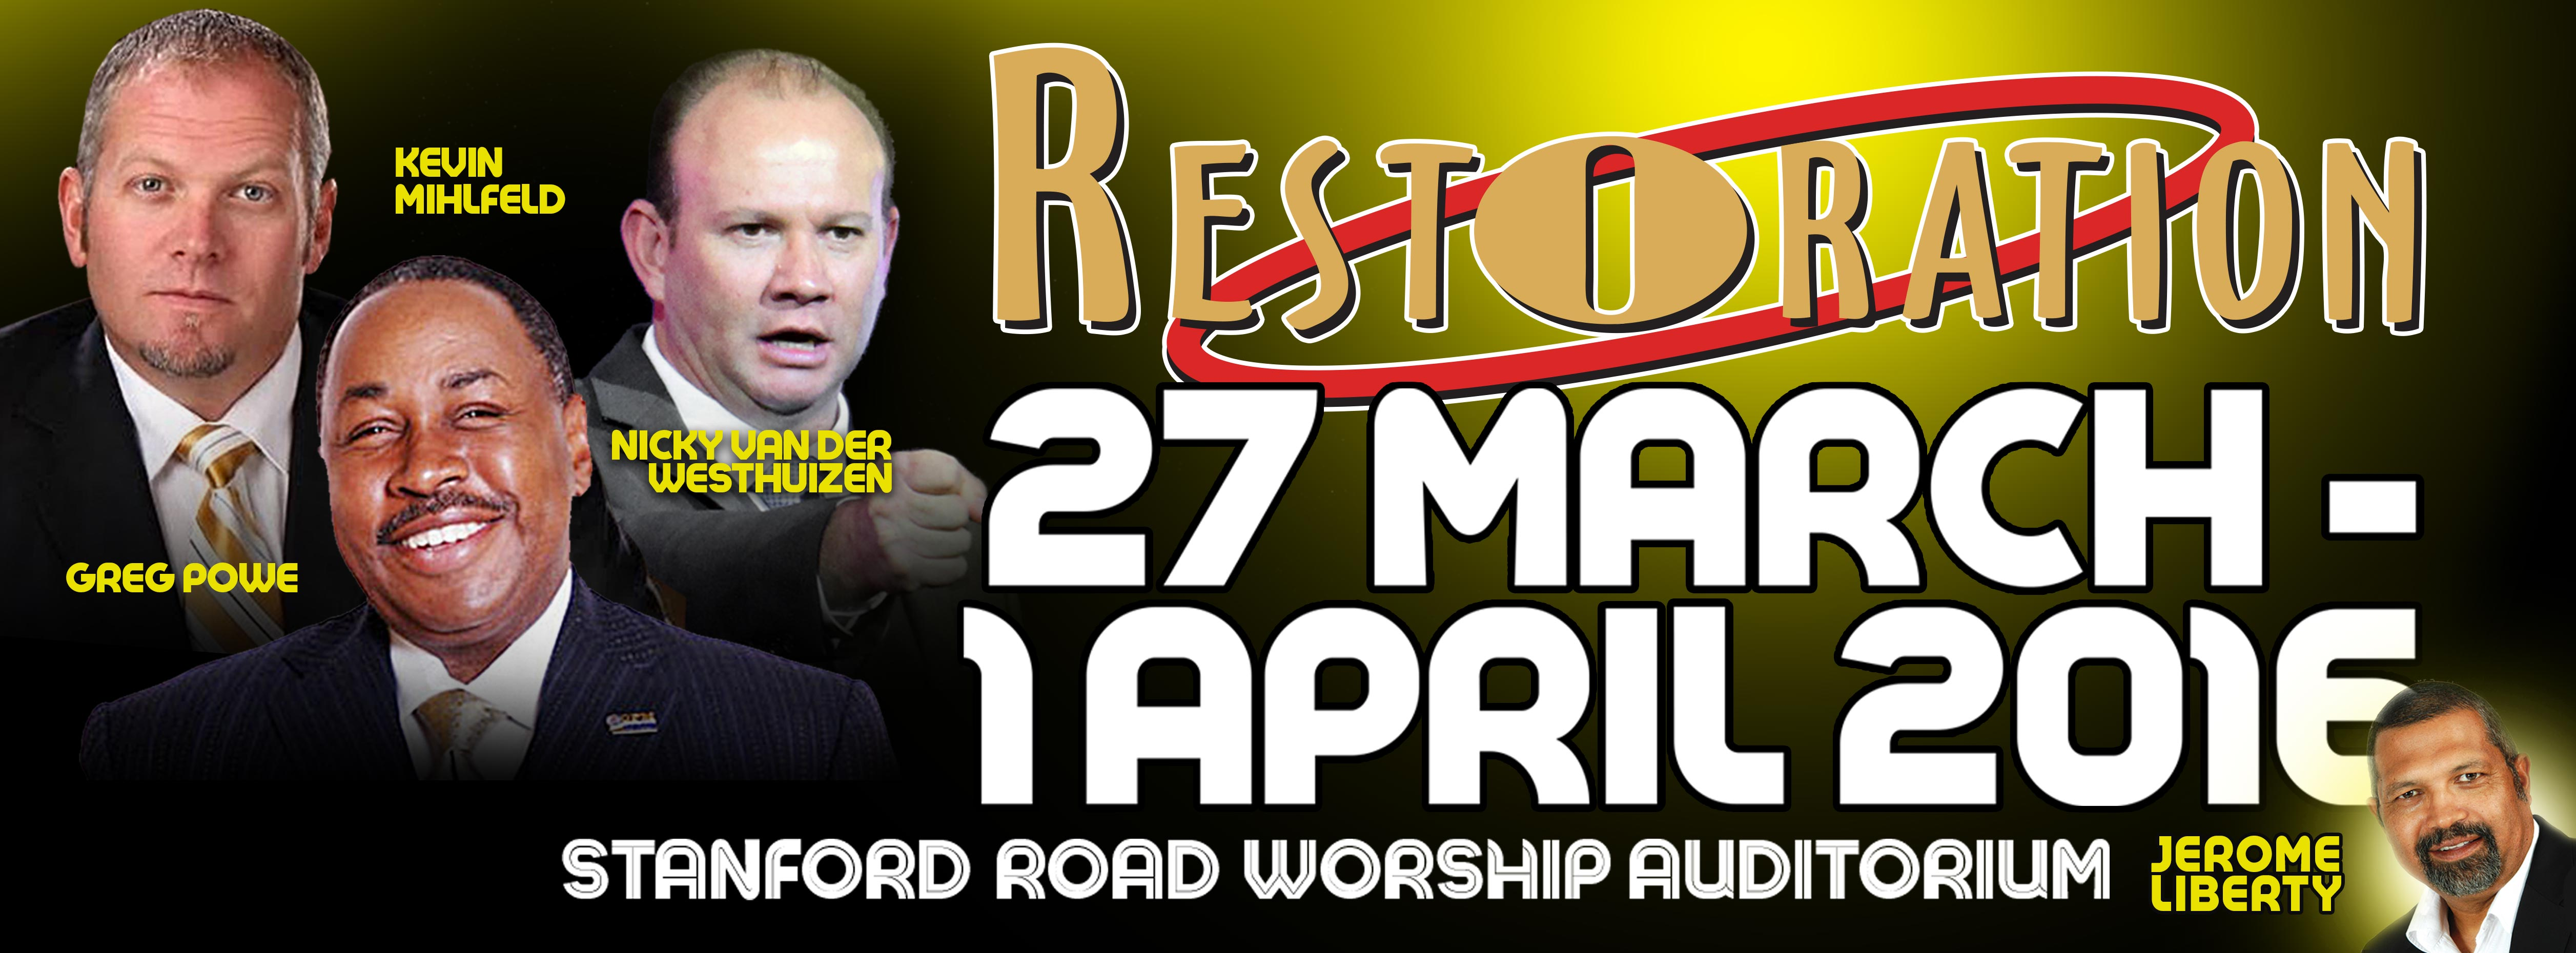 RESTORATION2016-FACEBOOK-COVER-WITH-PASTOR-1